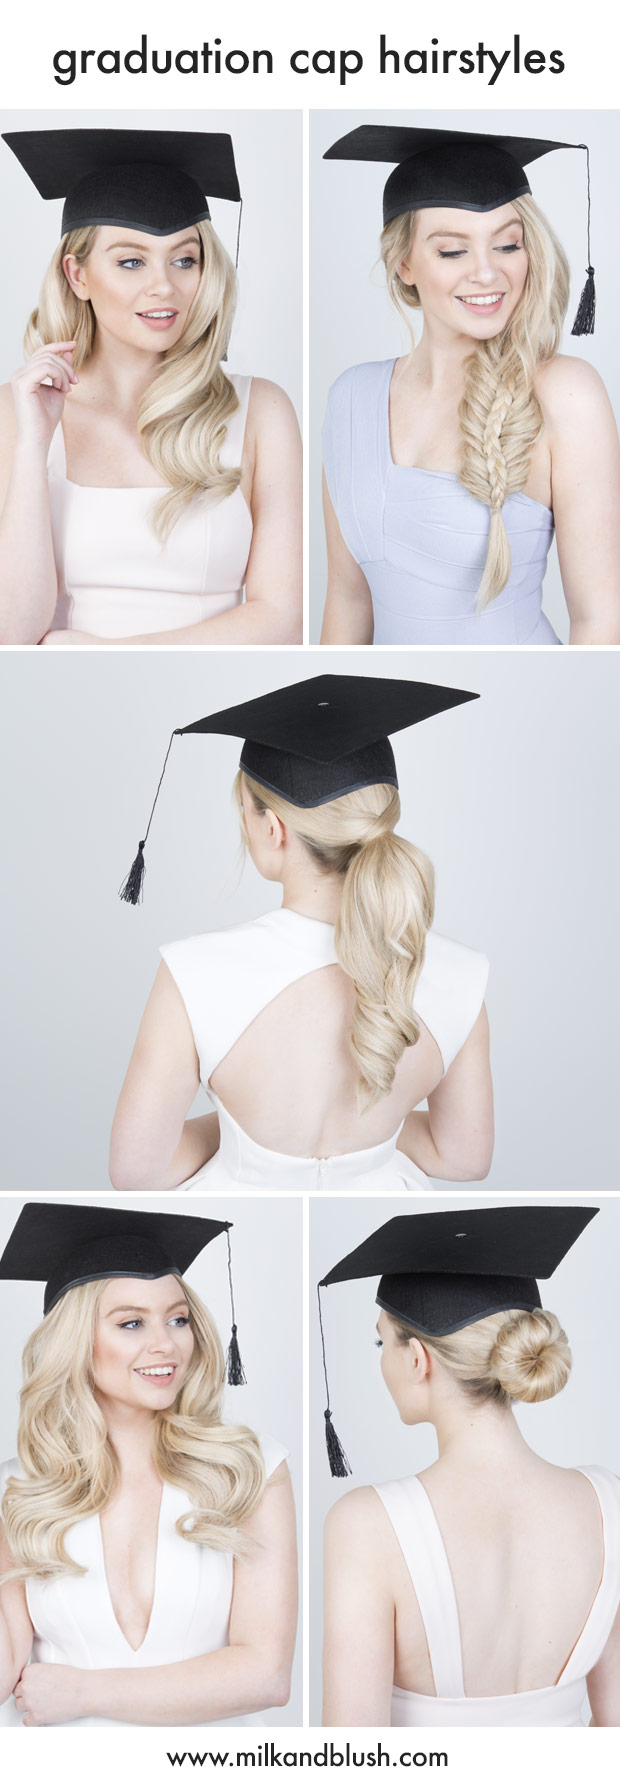 5 Graduation Cap Hairstyles Hair Extensions Blog Hair Tutorials